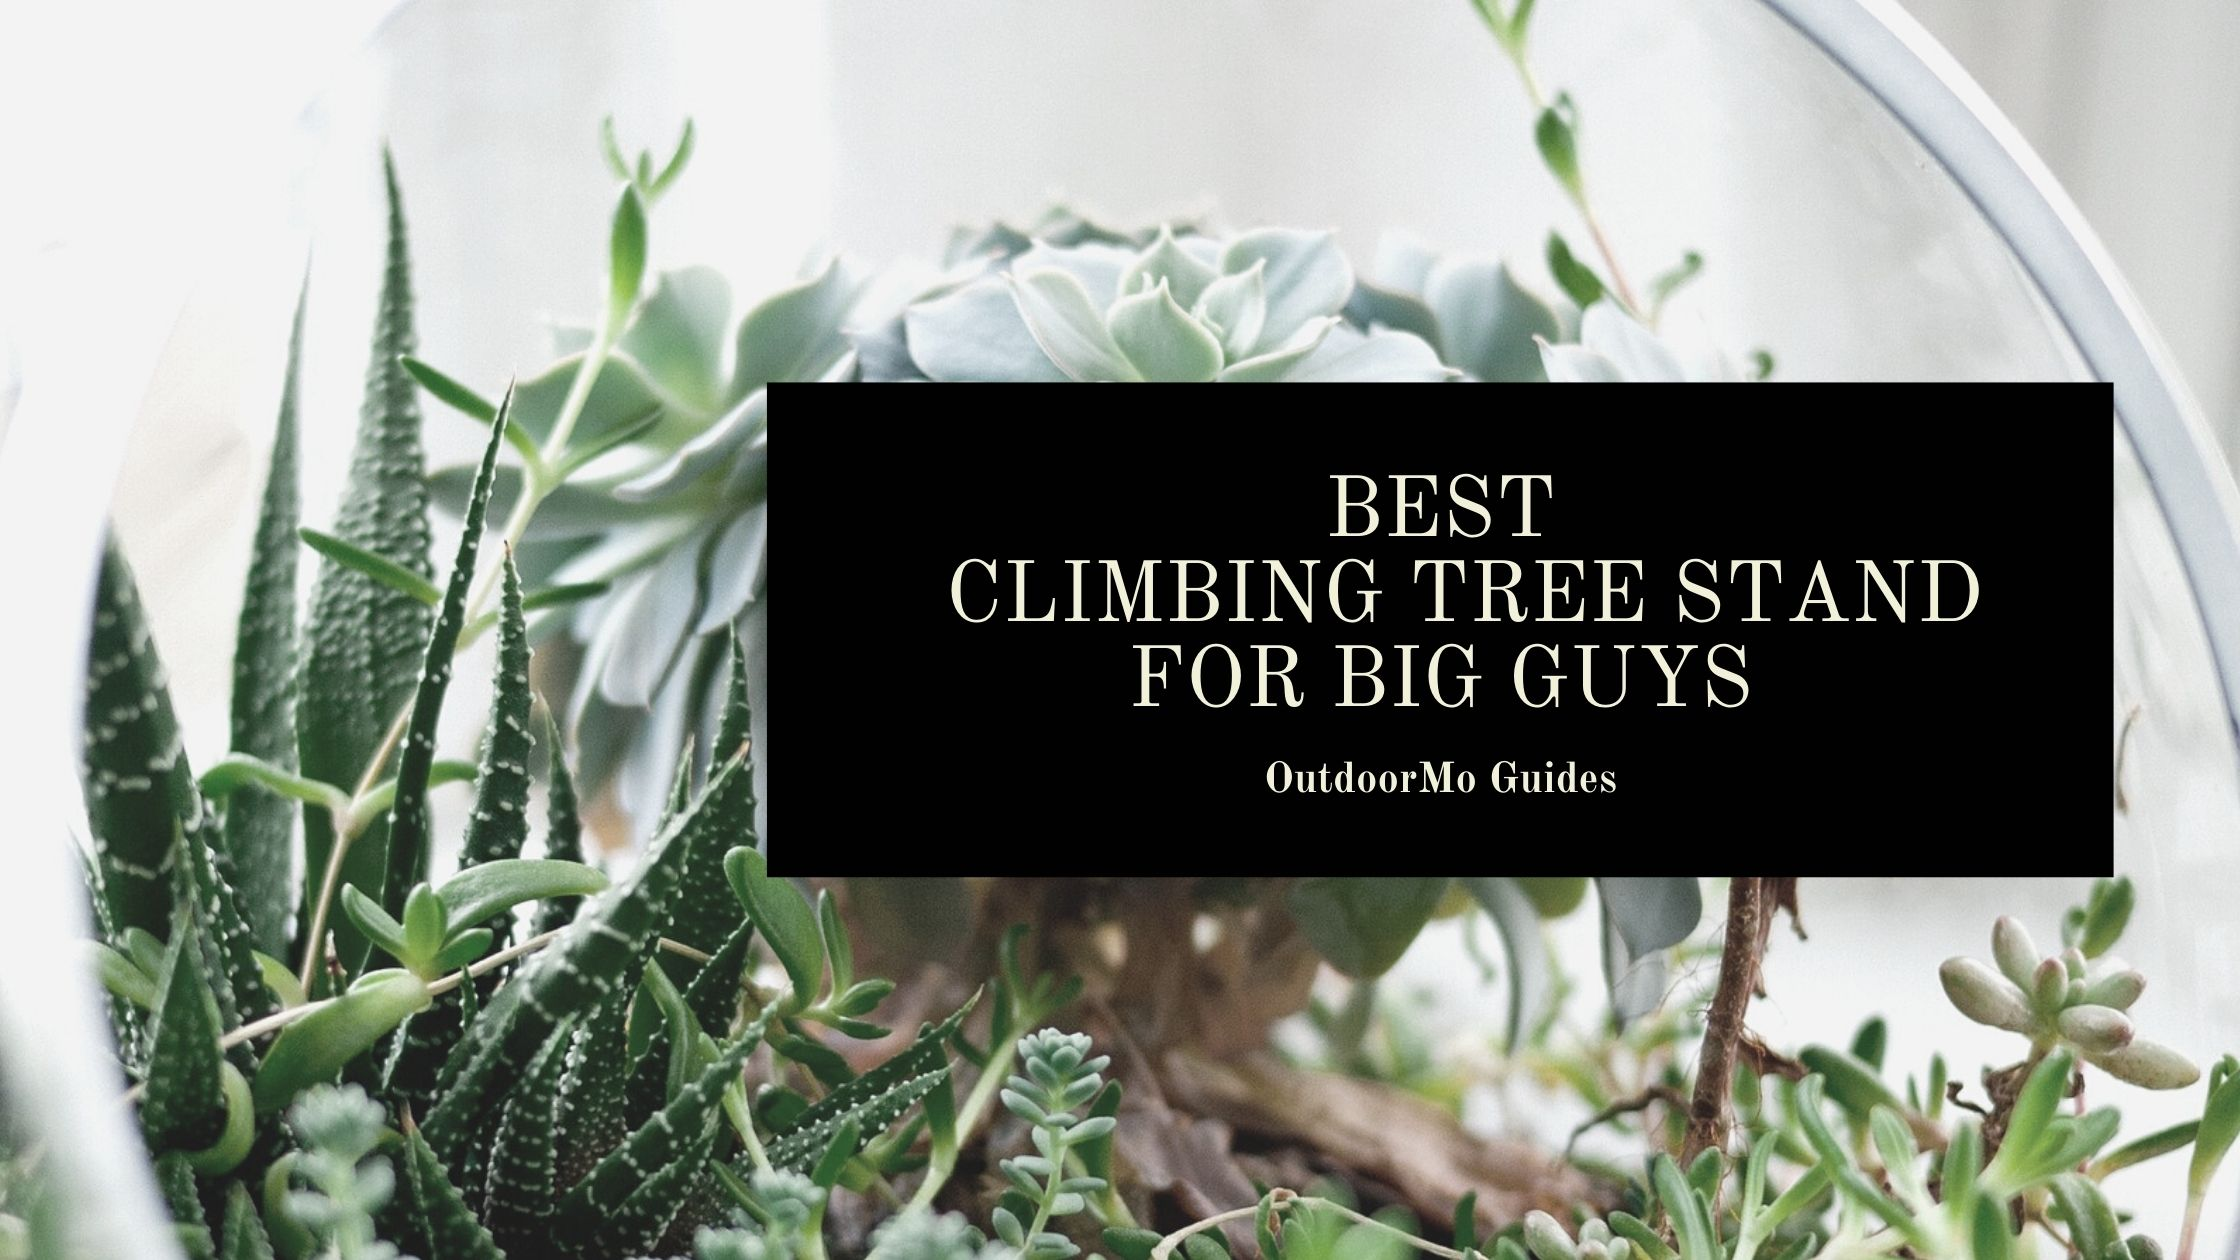 The Best Climbing Tree Stand For Big Guys